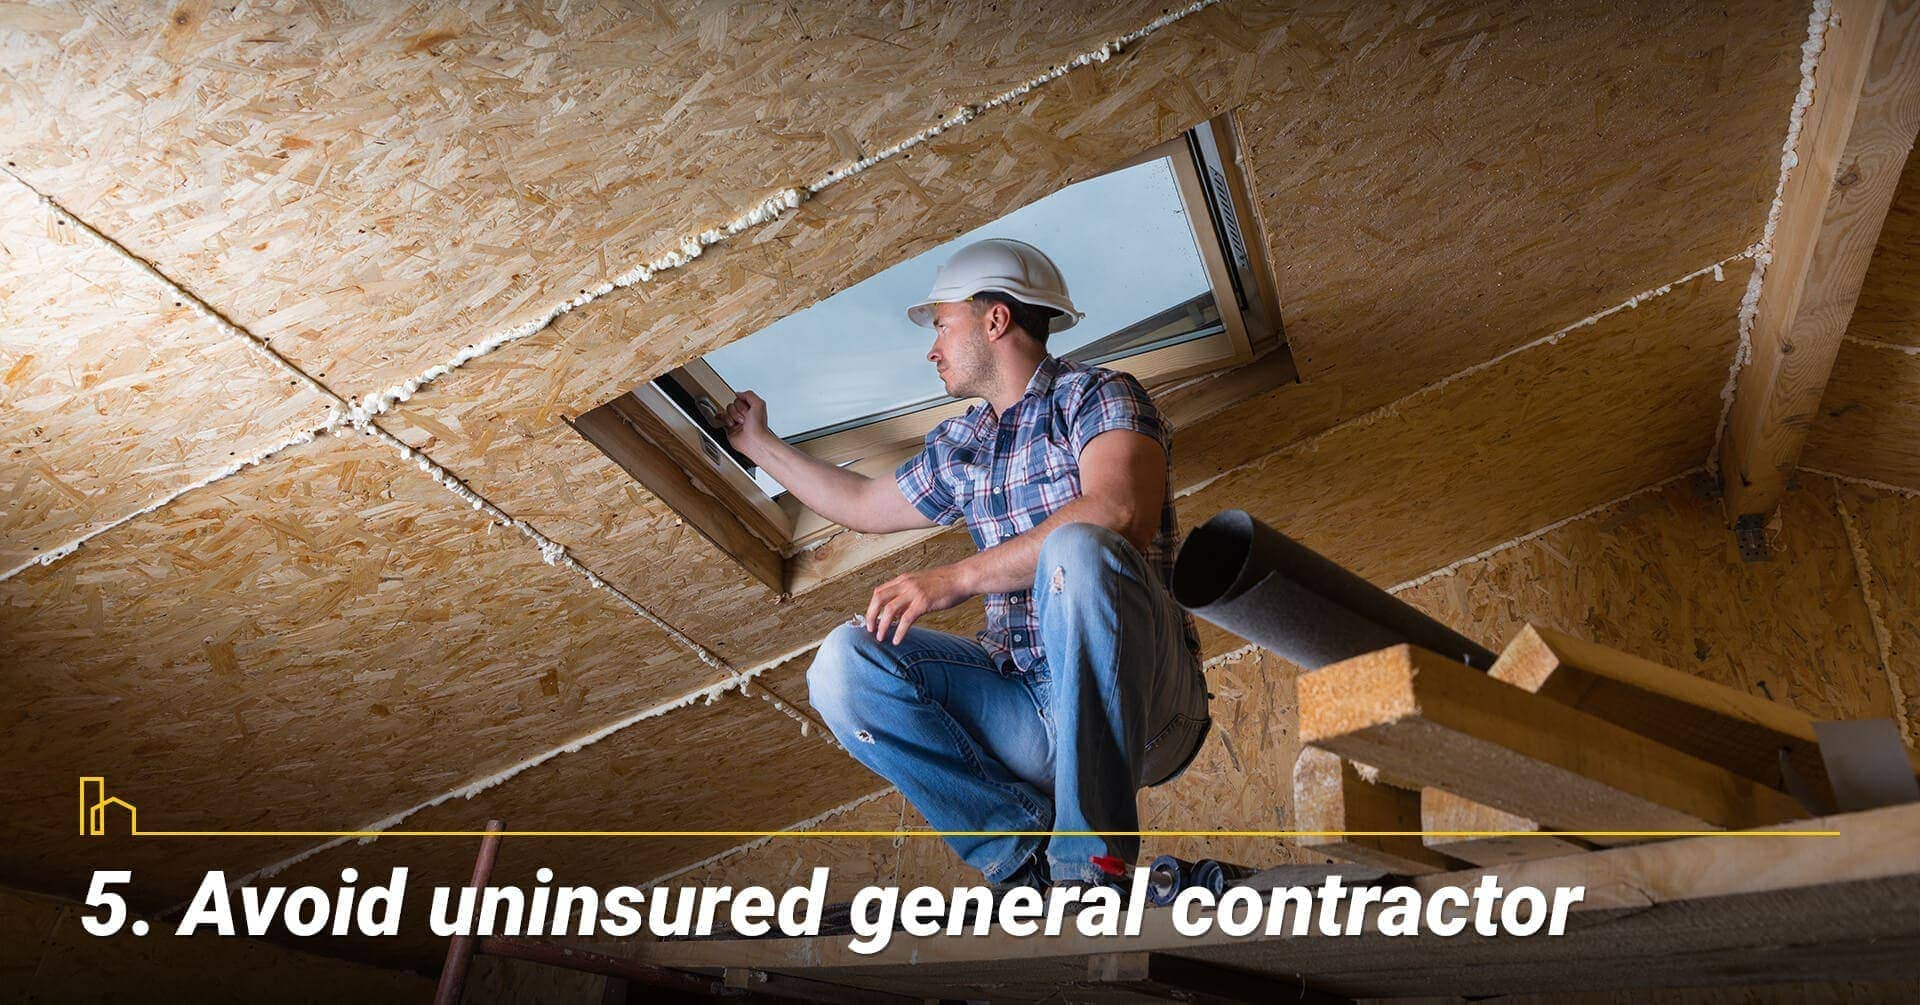 Avoid uninsured general contractor, ensure the general contractor is insured